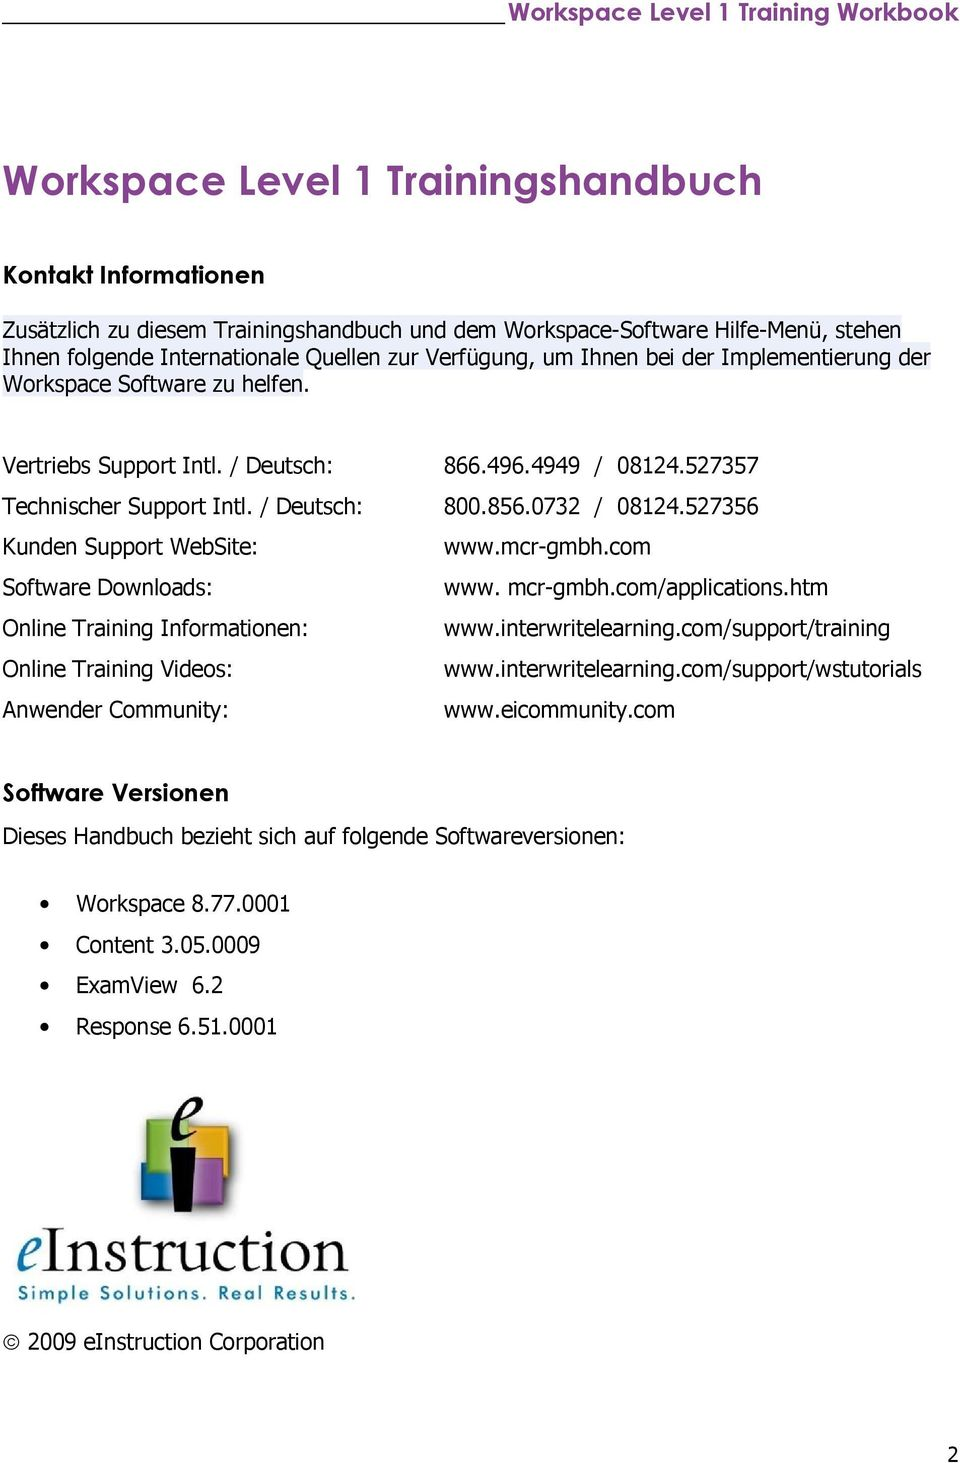 527356 Kunden Support WebSite: www.mcr-gmbh.com Software Downloads: www. mcr-gmbh.com/applications.htm Online Training Informationen: www.interwritelearning.